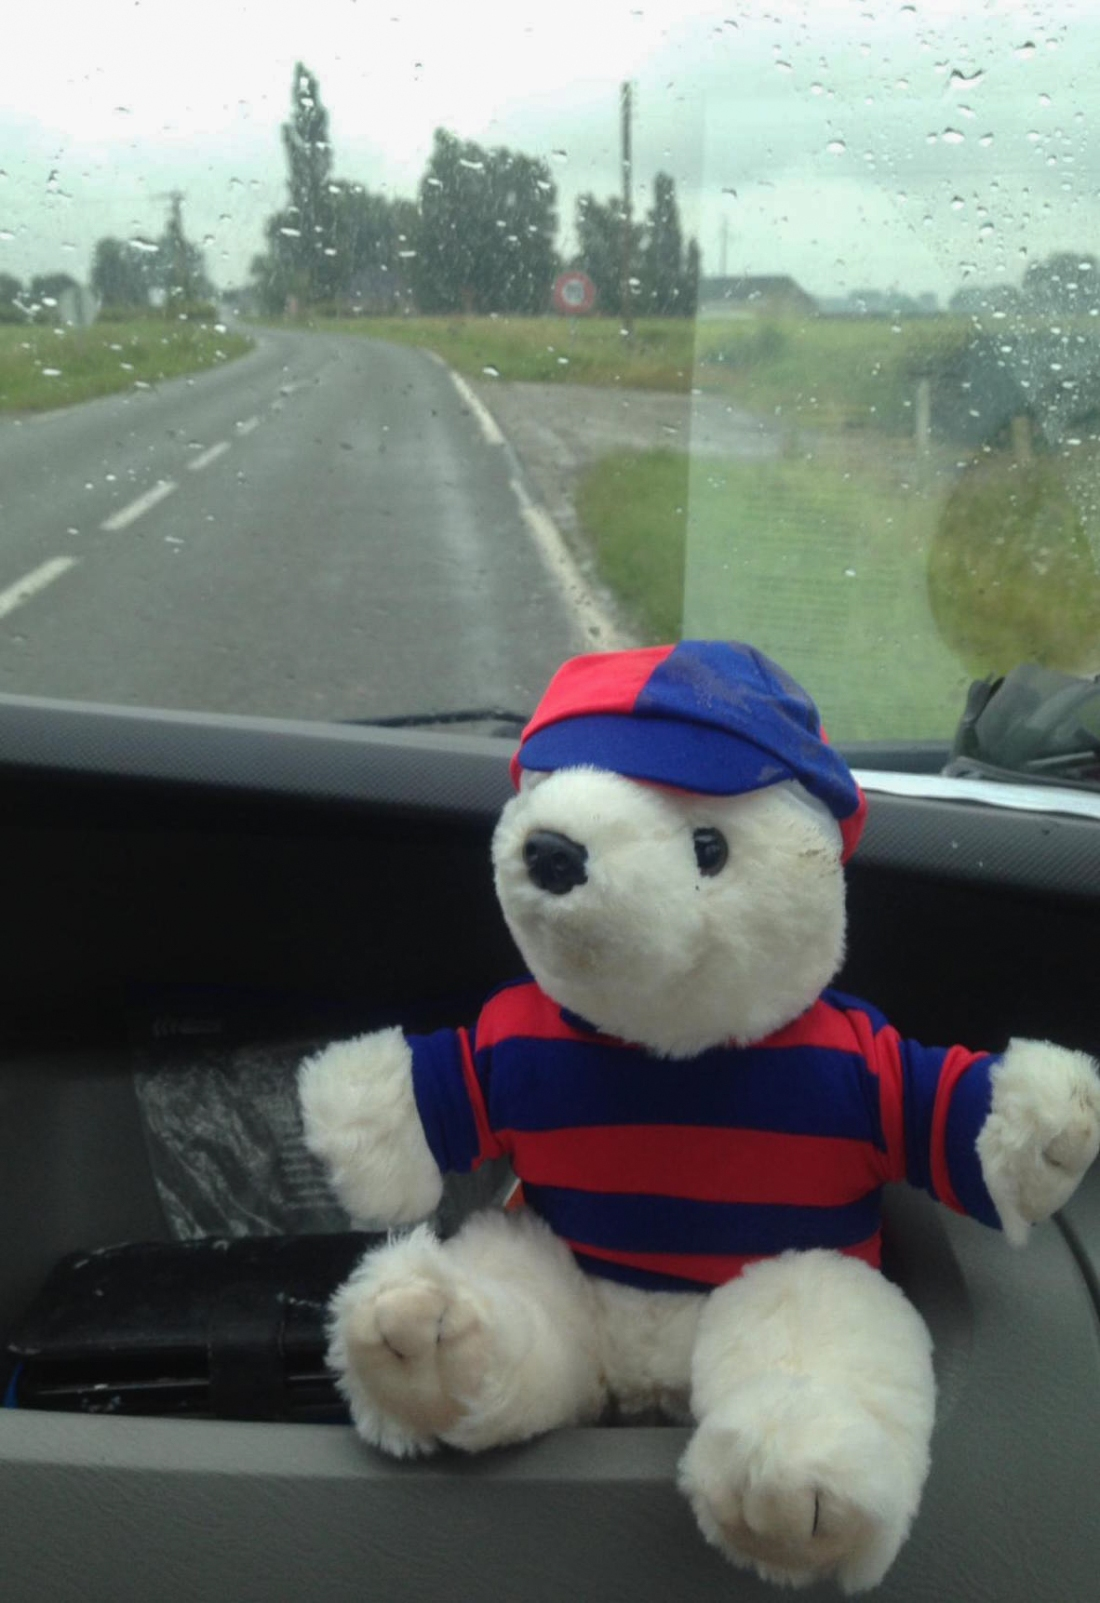 The Slide Away bear rides shotgun in filthy weather outside Calais.